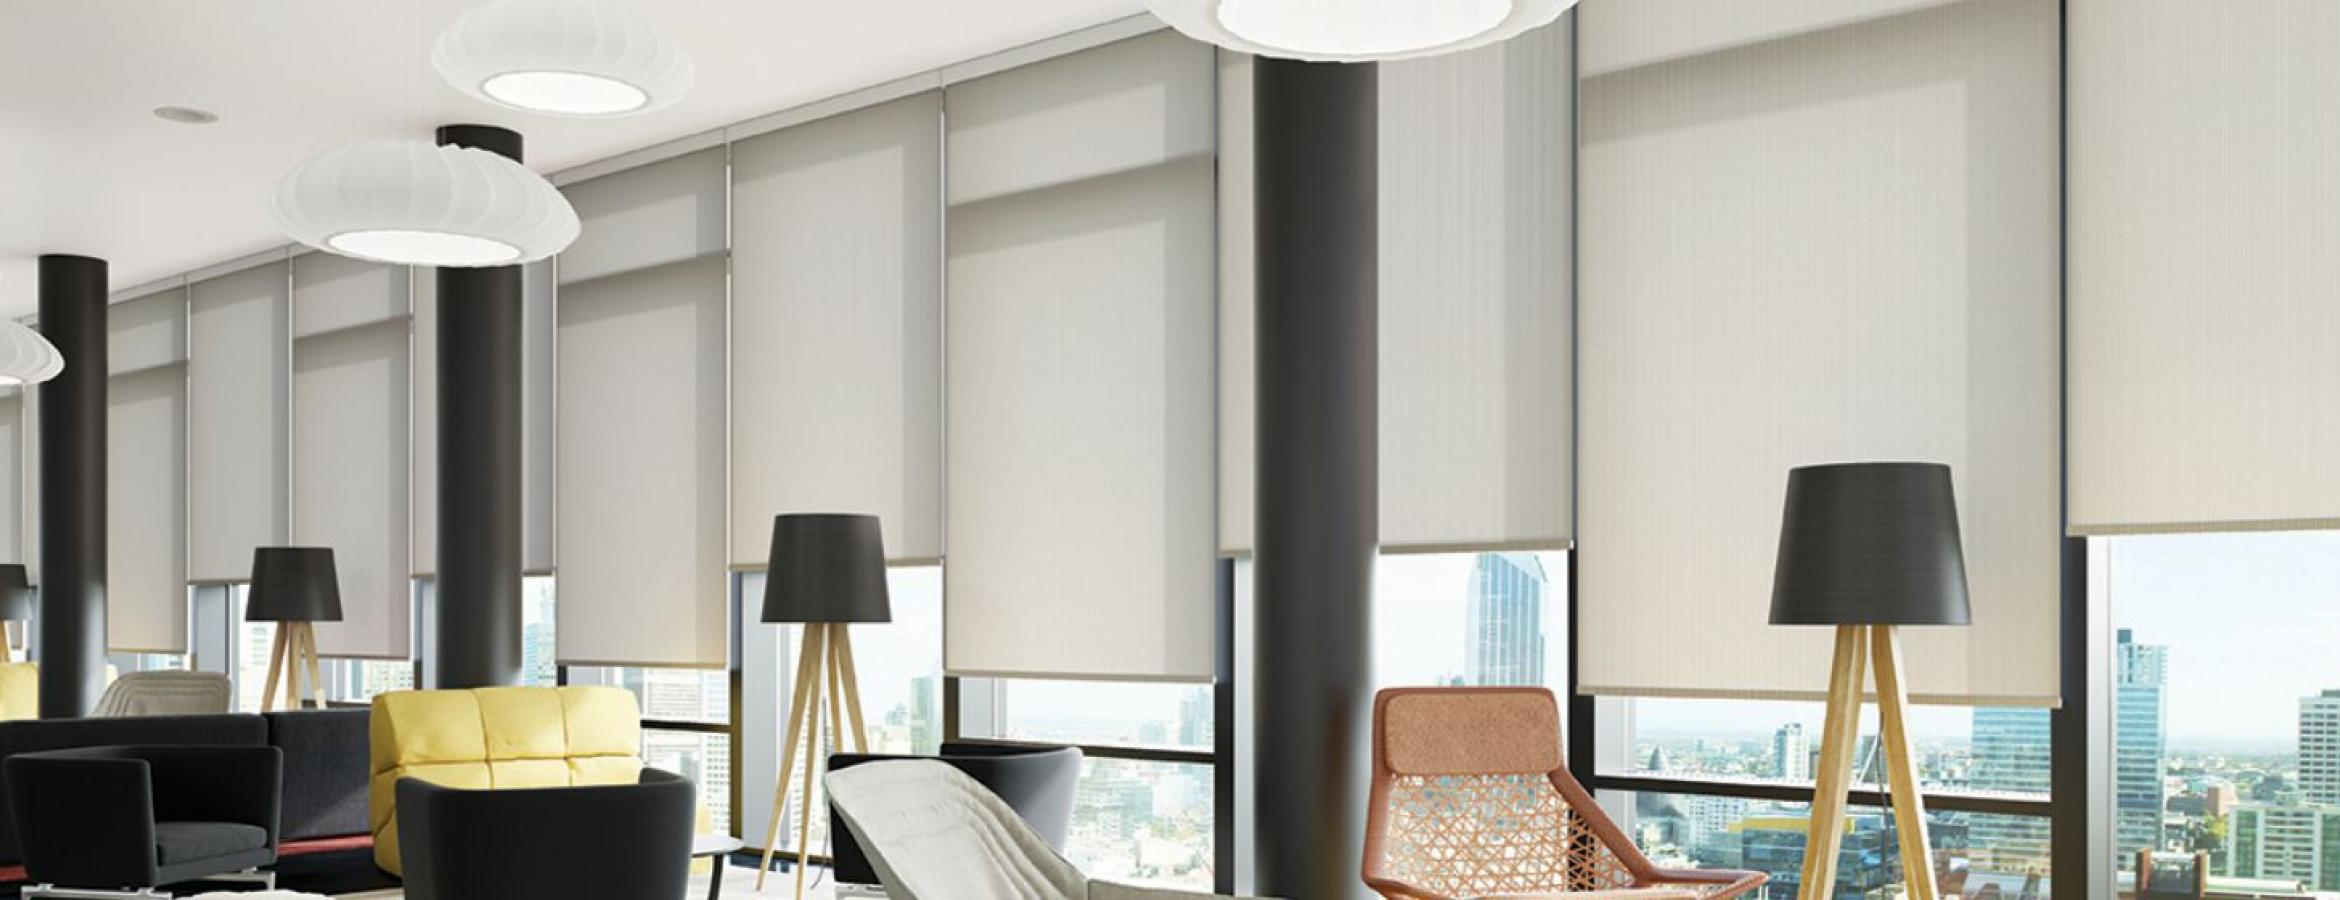 Peninsula Curtains and Blinds strives